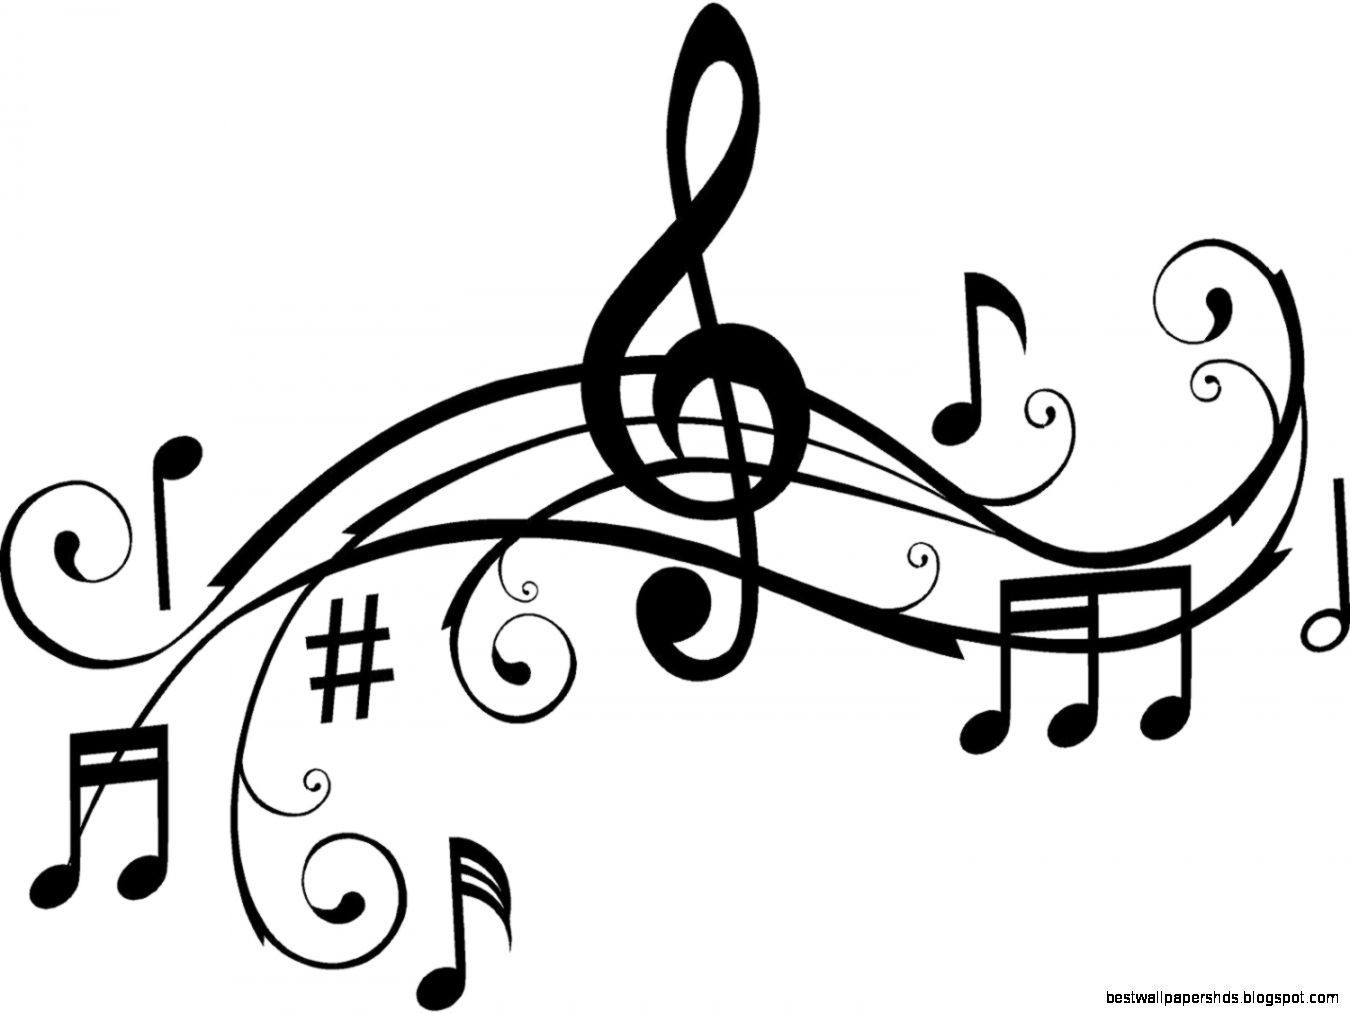 music note symbol notes clipart symbols coloring pages painting musical clip tattoo discover sheet